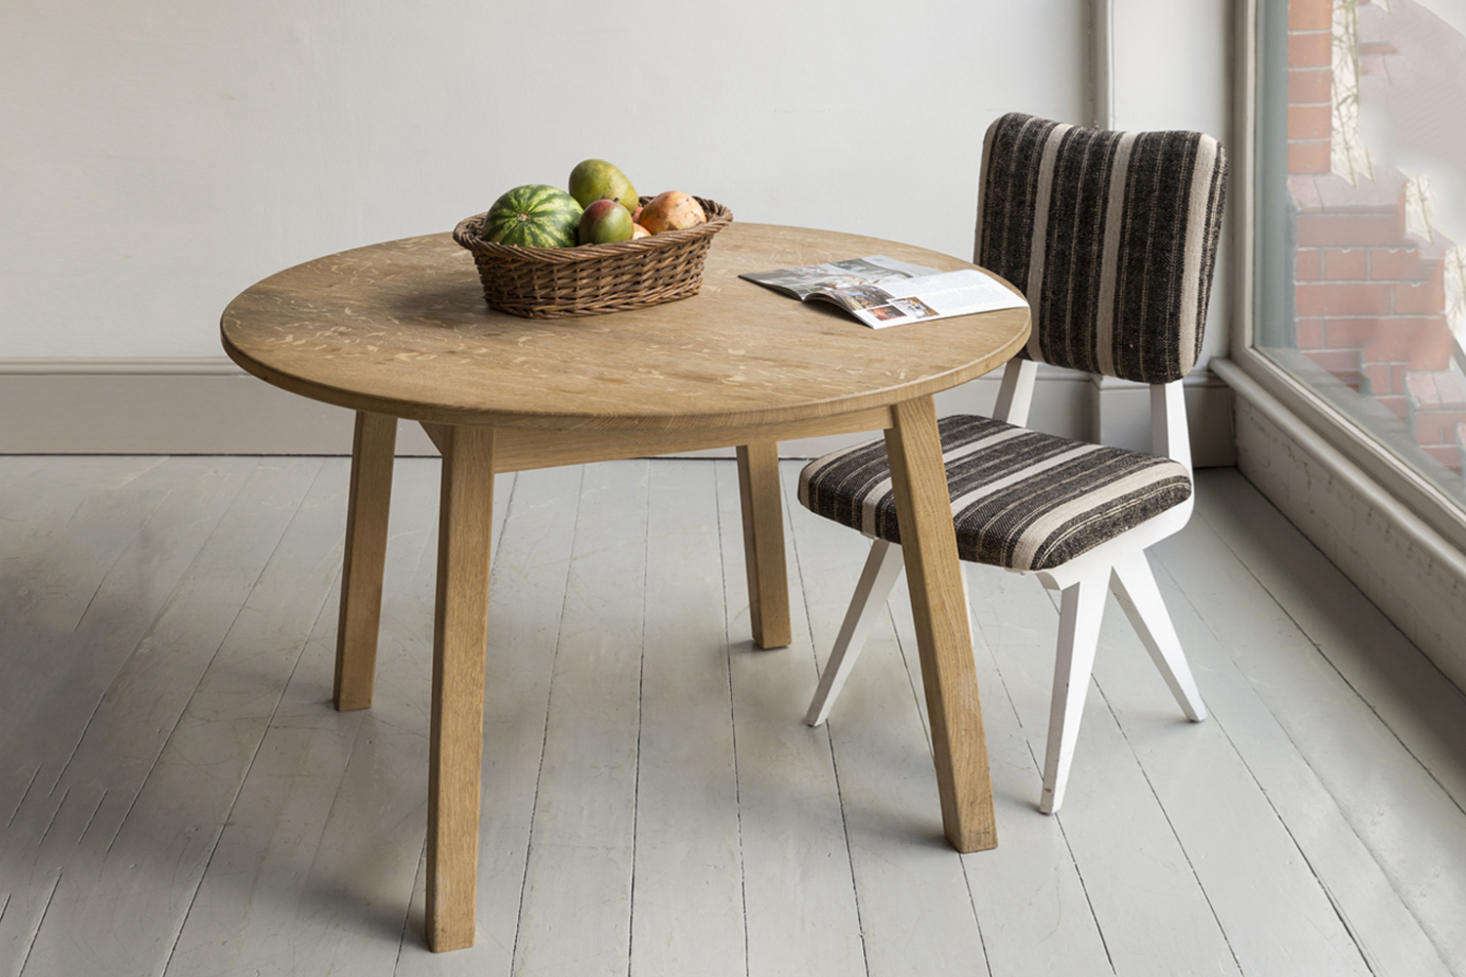 The dining table is the Howe Arts & Crafts Round Breakfast Table that comes in a range of painted wood and finishes. The table inHarding&#8